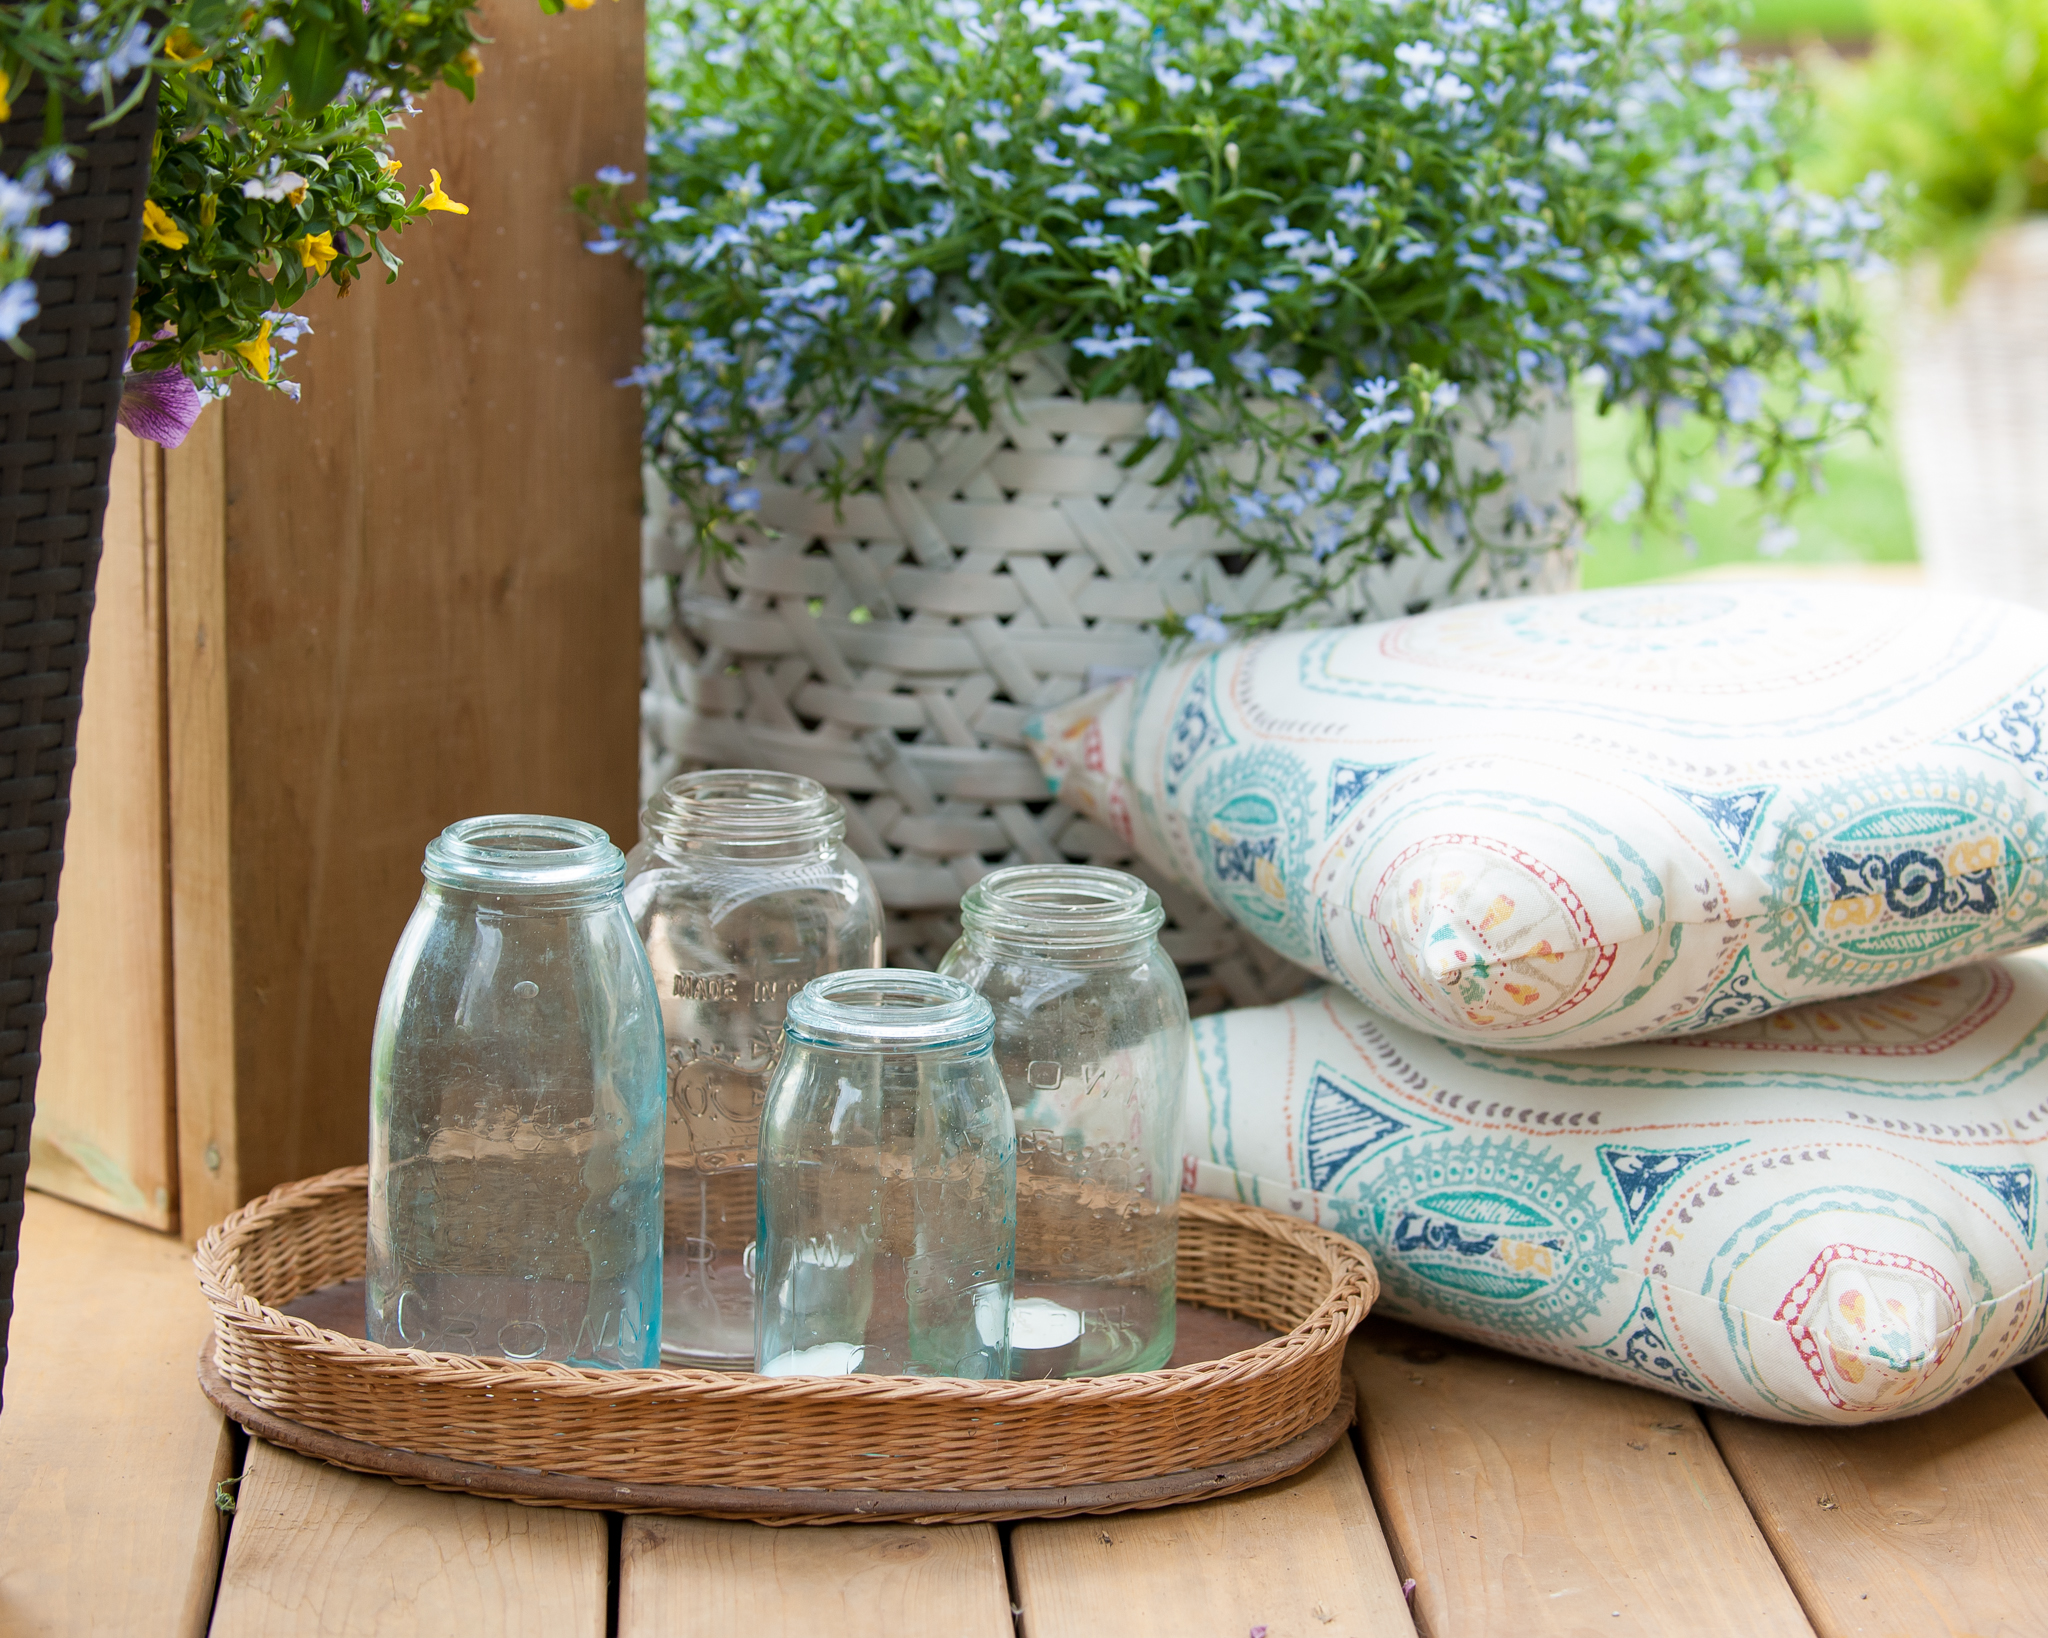 A stylish tray of glasses ready for when guests arrive.